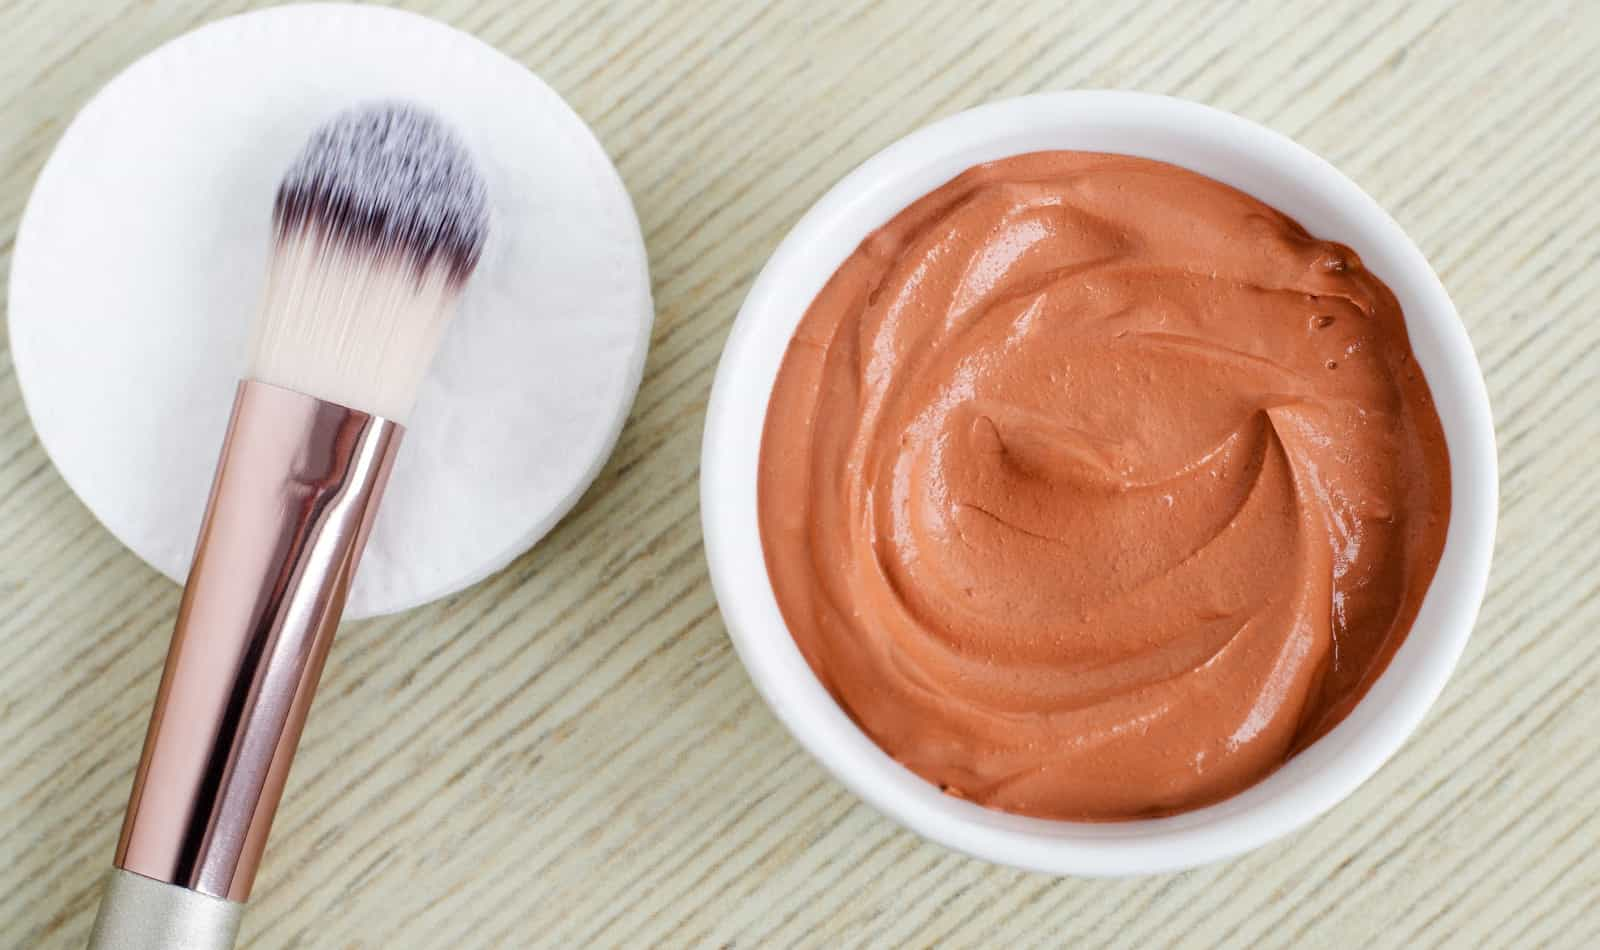 What is the best type of clay for hair? Check out our guide to the top three types to find out! We'll even share our favorite clay haircare product for each.